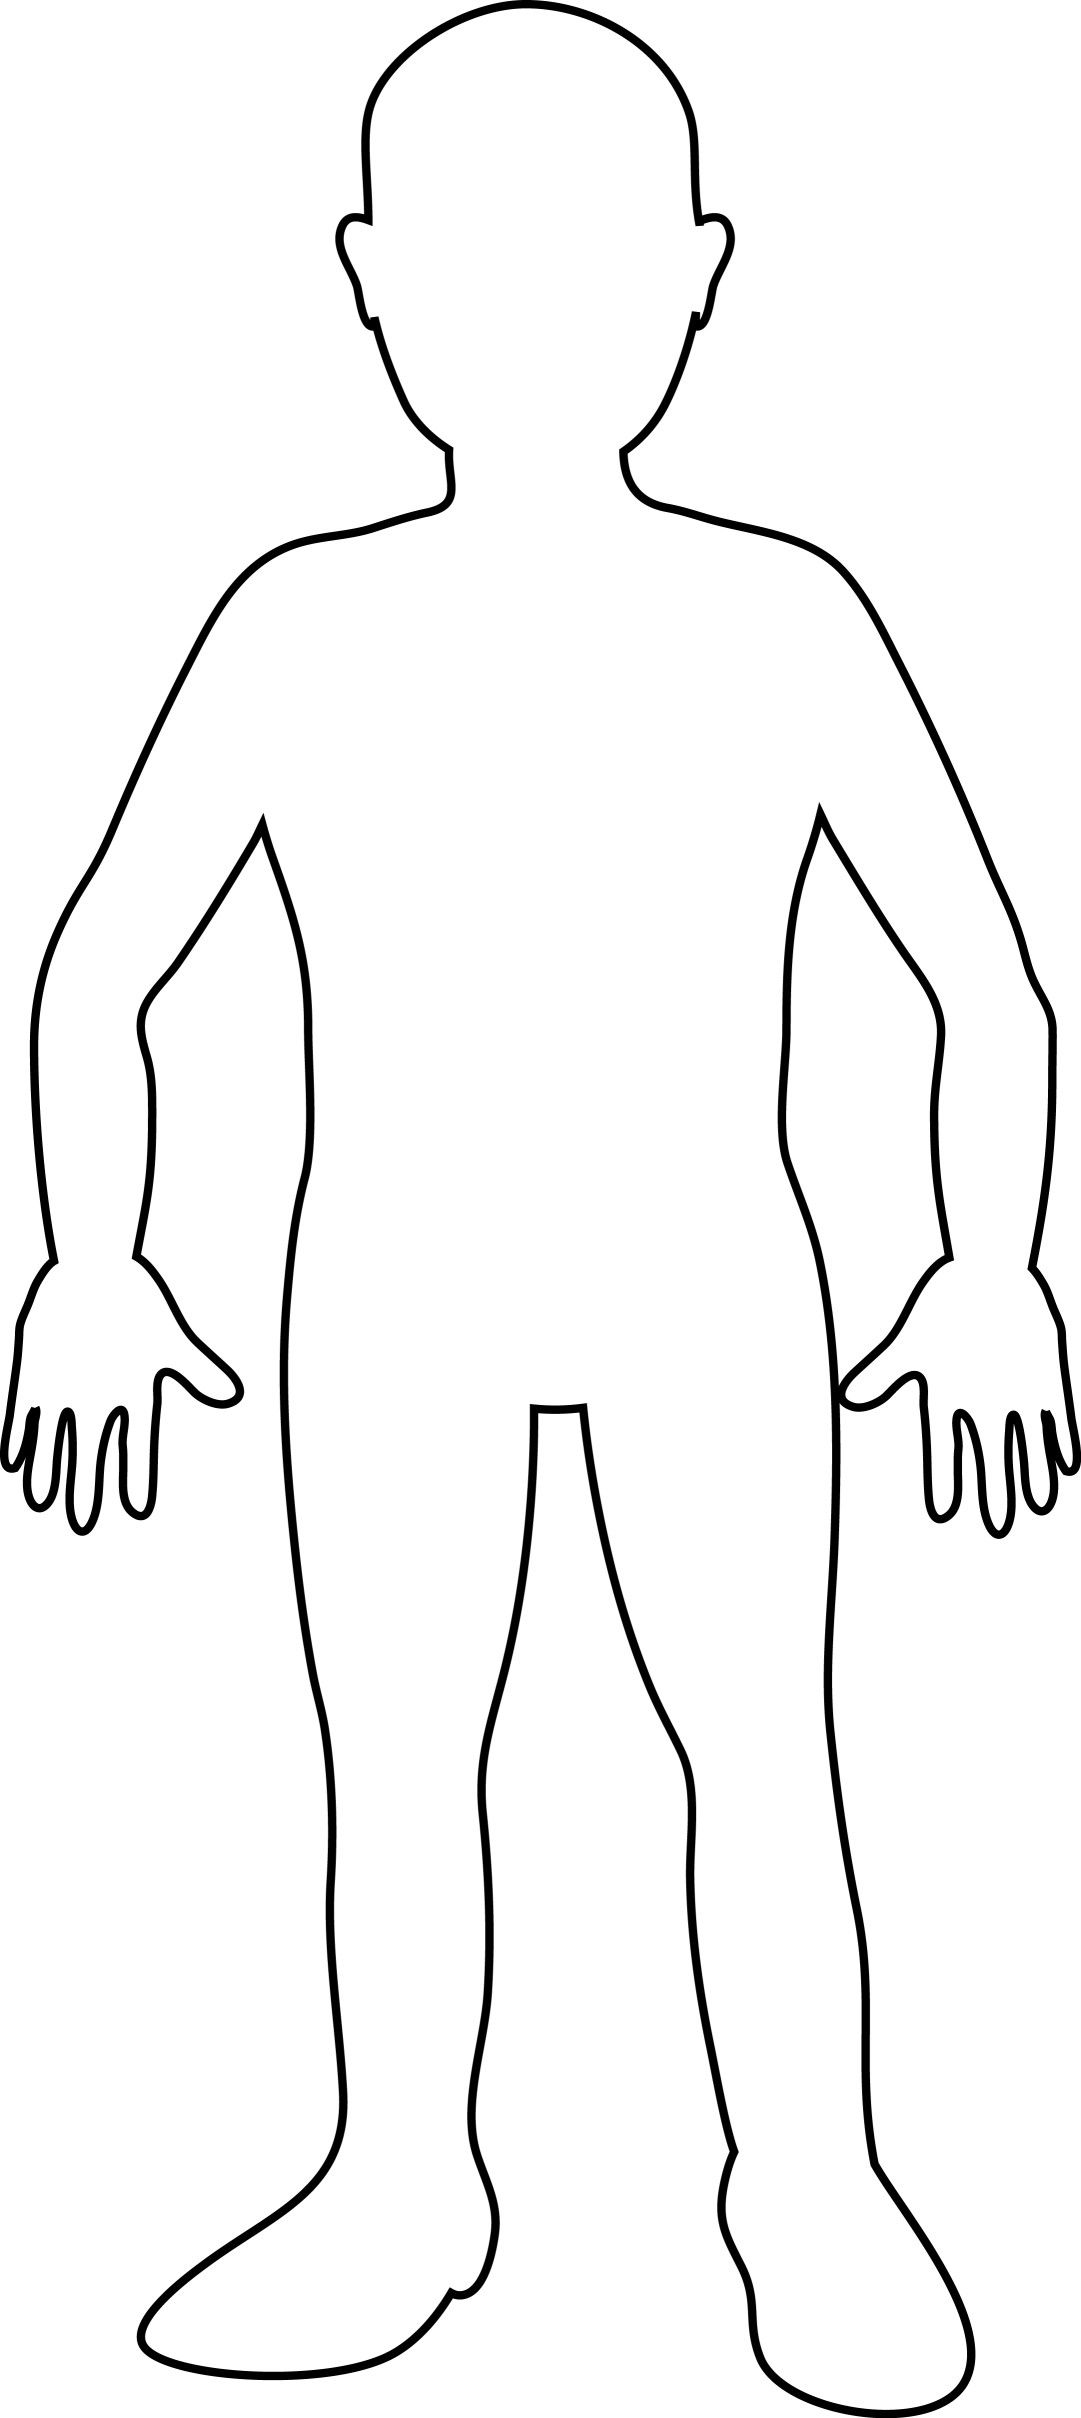 Human Body Outline For Kids And Adult